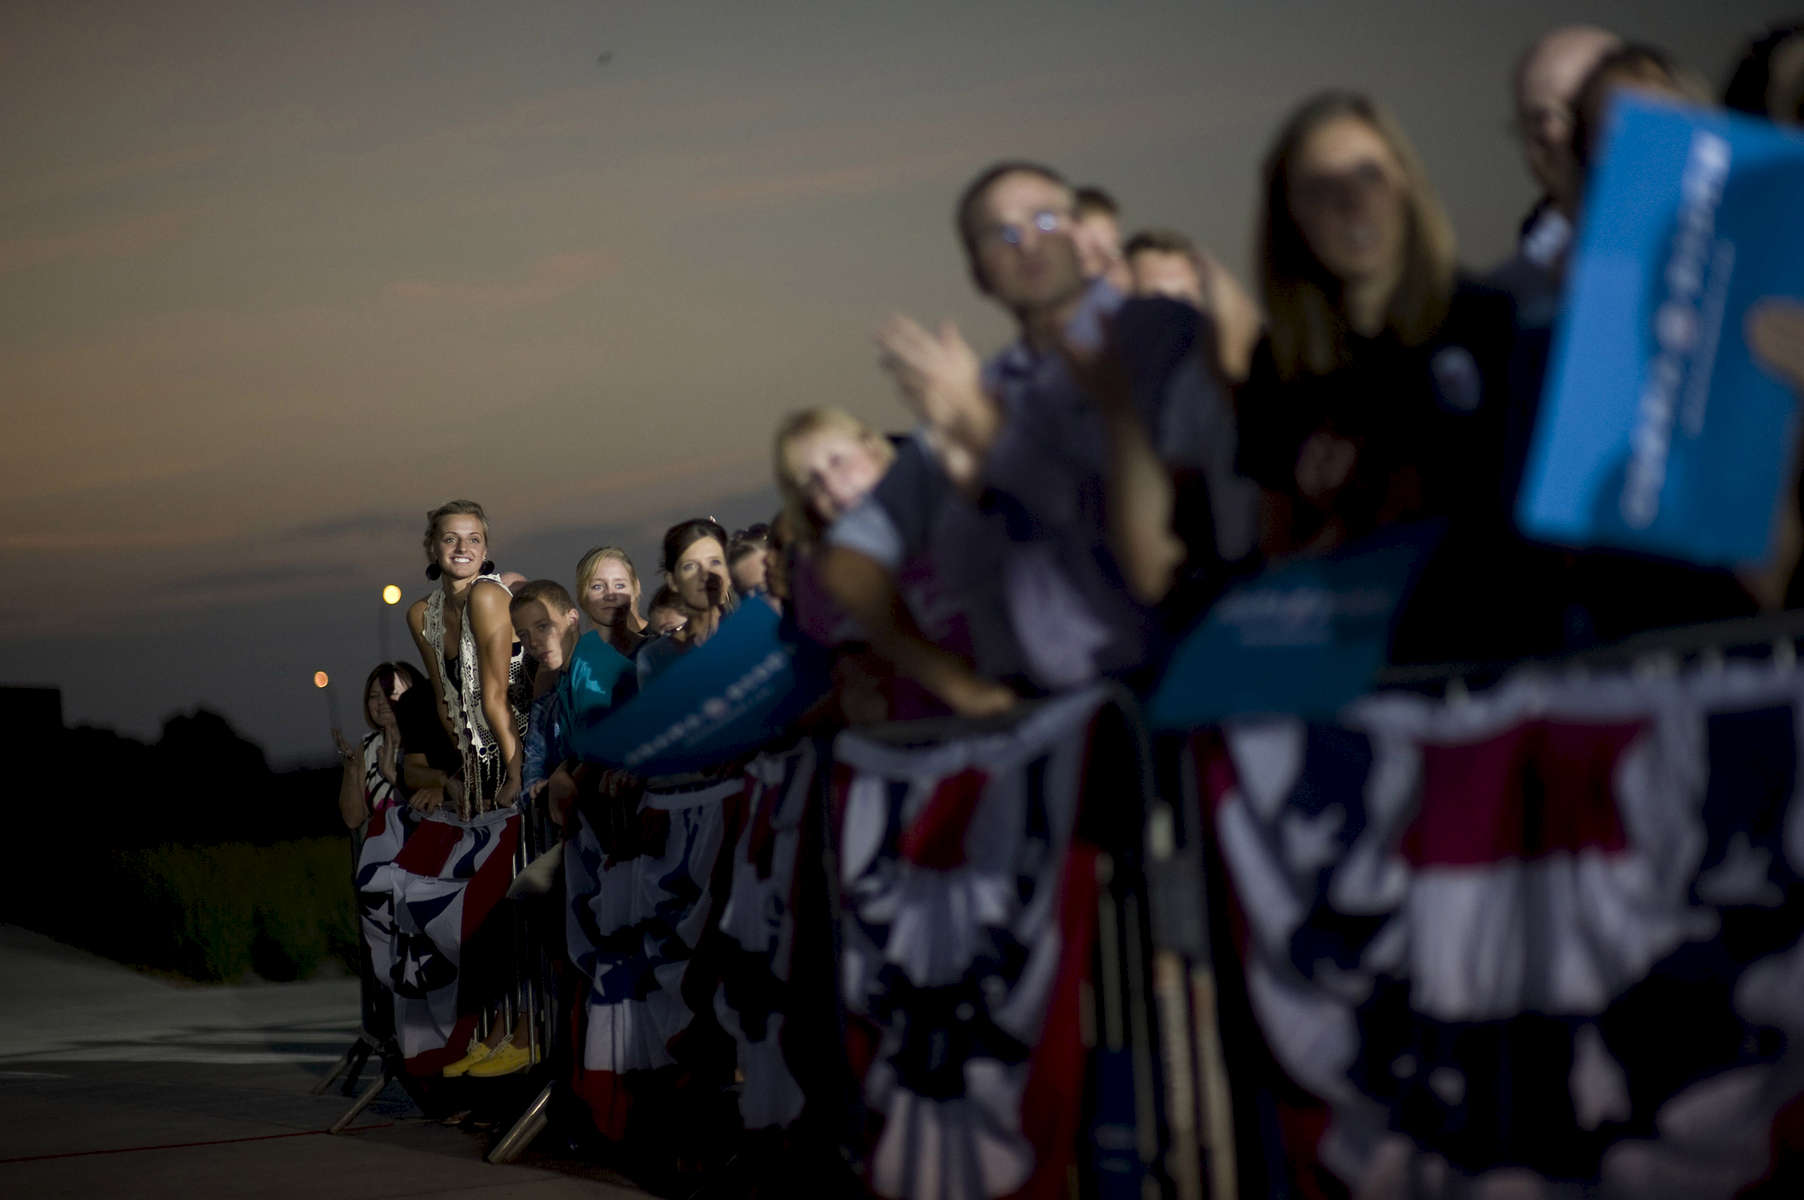 August 14th, 2012 - WATERLOO, IOWA: A young woman leans out in order to better see President Barack Obama as he speaks at an event in Waterloo, IA. (Scout Tufankjian for Obama for America/Polaris)